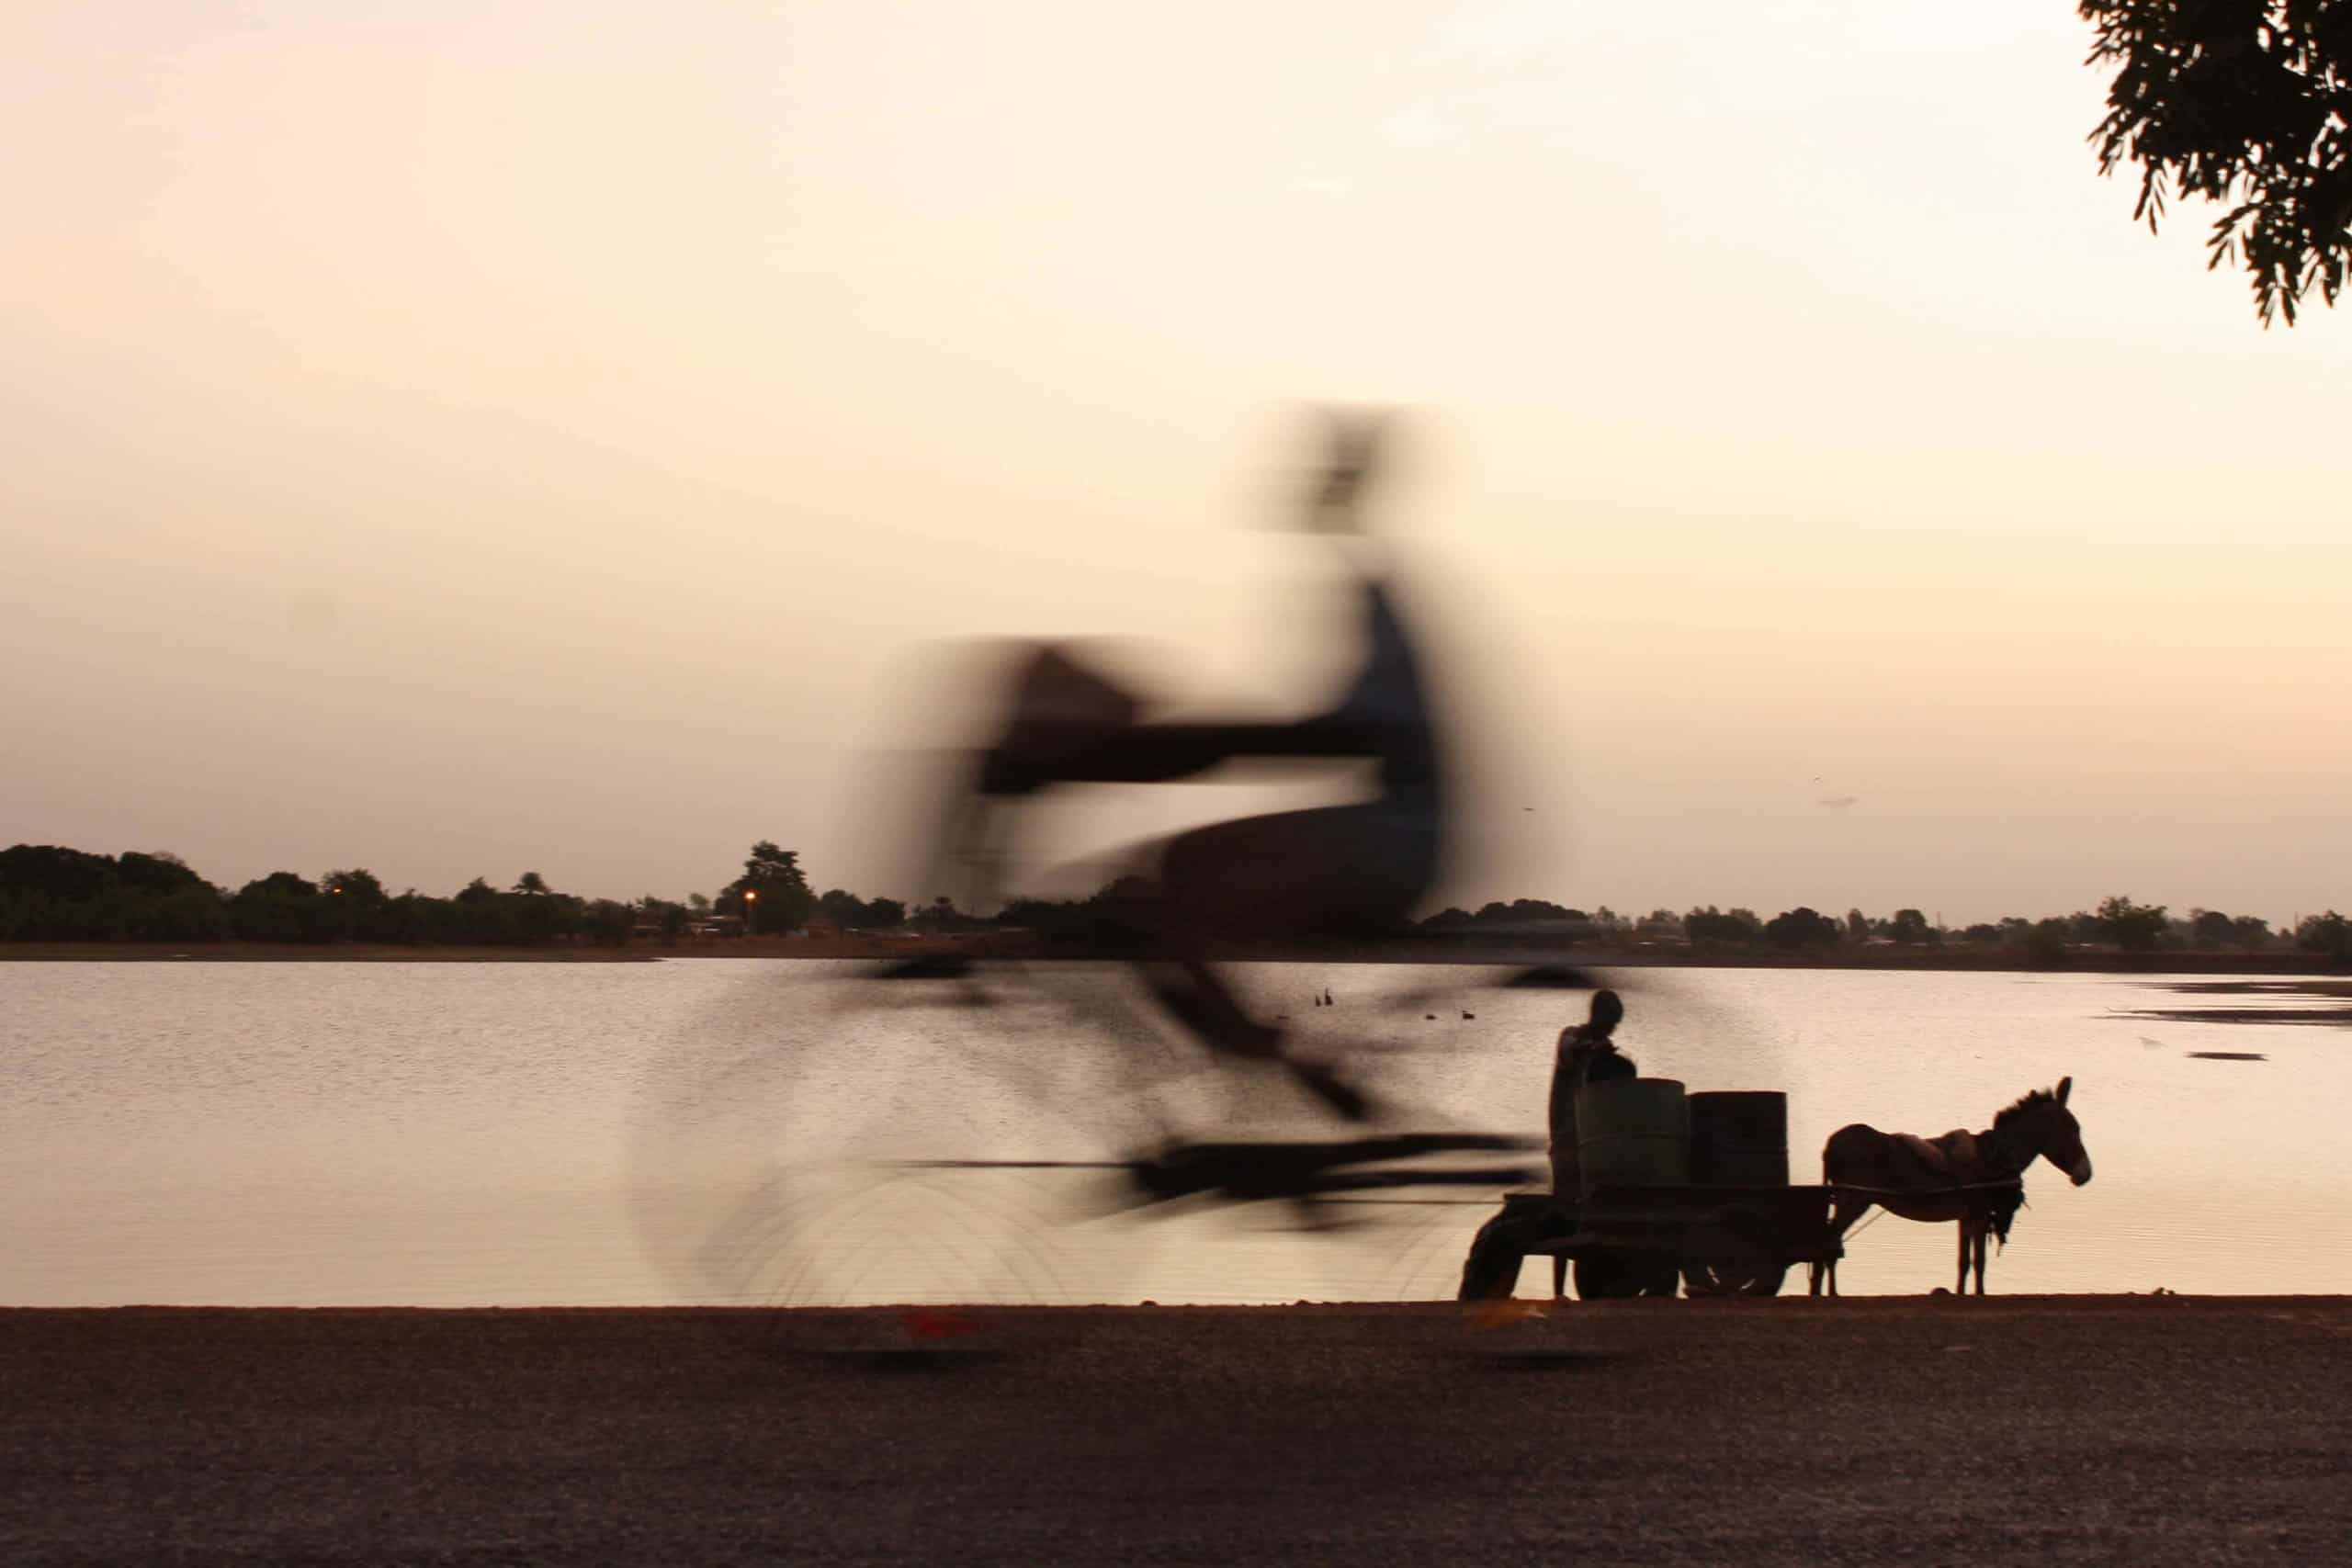 Charles Okereke, Homeward, Mali, 2010.